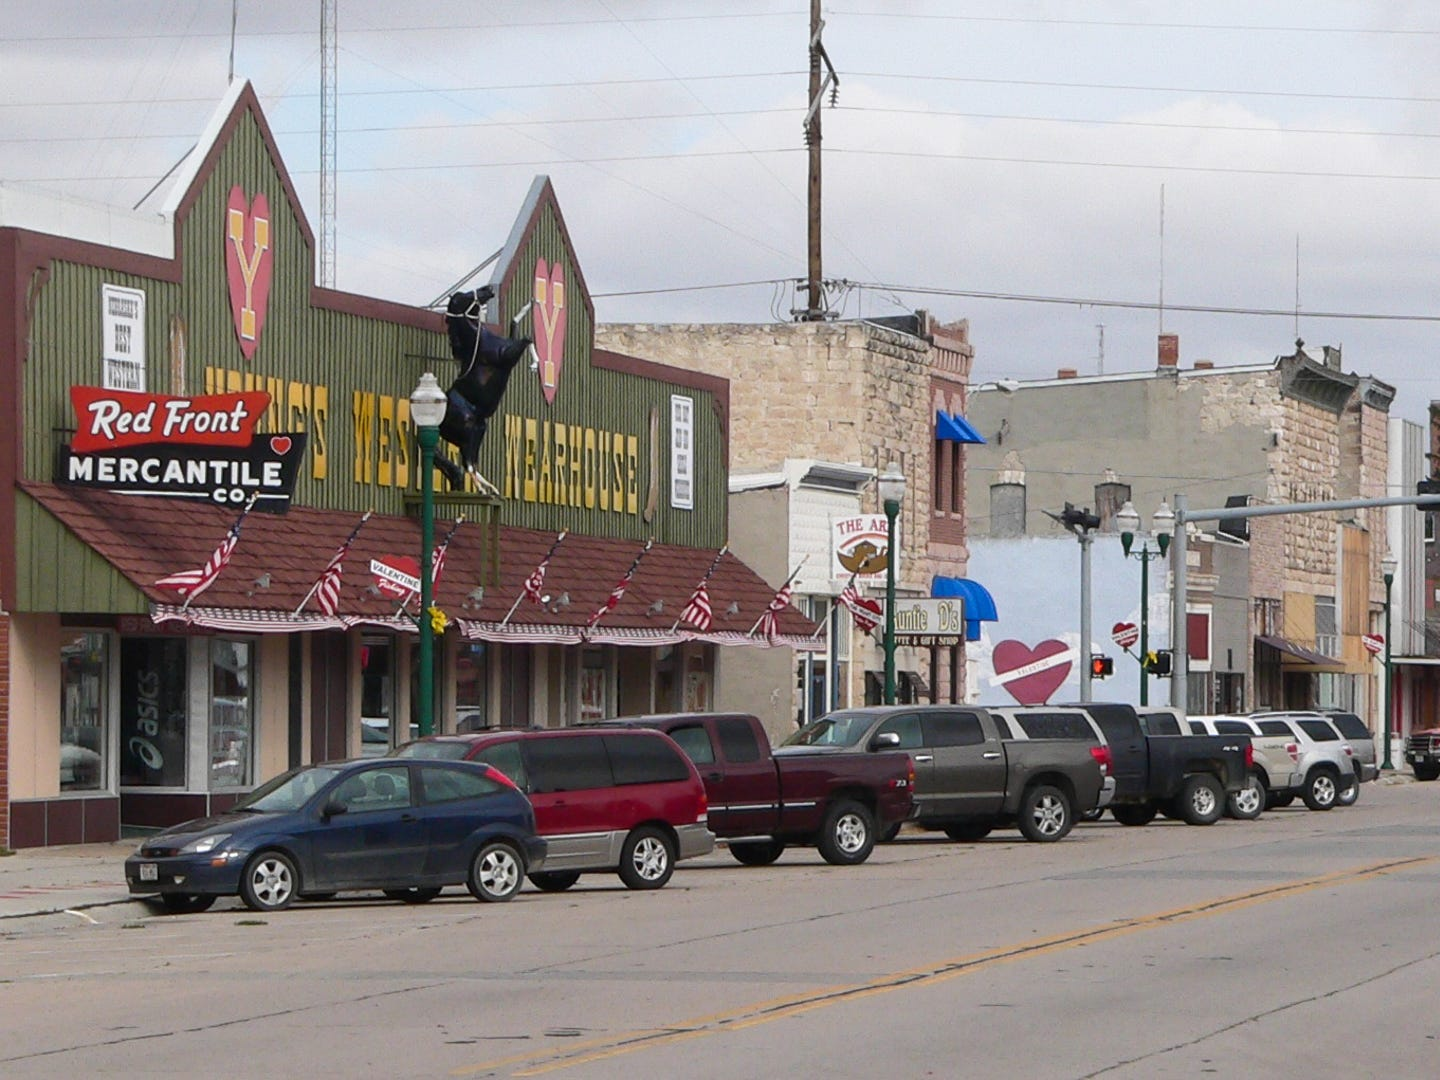 """Nebraska: Whether or not your weekend trip is romantic in nature, you're sure to love exploring the outdoors in Valentine. The town's slogan is """"Small town, big adventure,"""" and with so much to do, it truly lives up to it. Take in the scenic beauty of Cherry County while hiking, horseback riding, canoeing, tubing, kayaking, hunting, fishing or camping during your trip. Hike to the waterfalls at Smith Falls State Park or the Snake River Falls, see the local wildlife at the Fort Niobrara National Wildlife Refuge — which is a free thing to do in Nebraska — and unwind with a glass of wine at the Niobrara Valley Vineyards. Fort Niobrara National Wildlife Refuge: Free."""